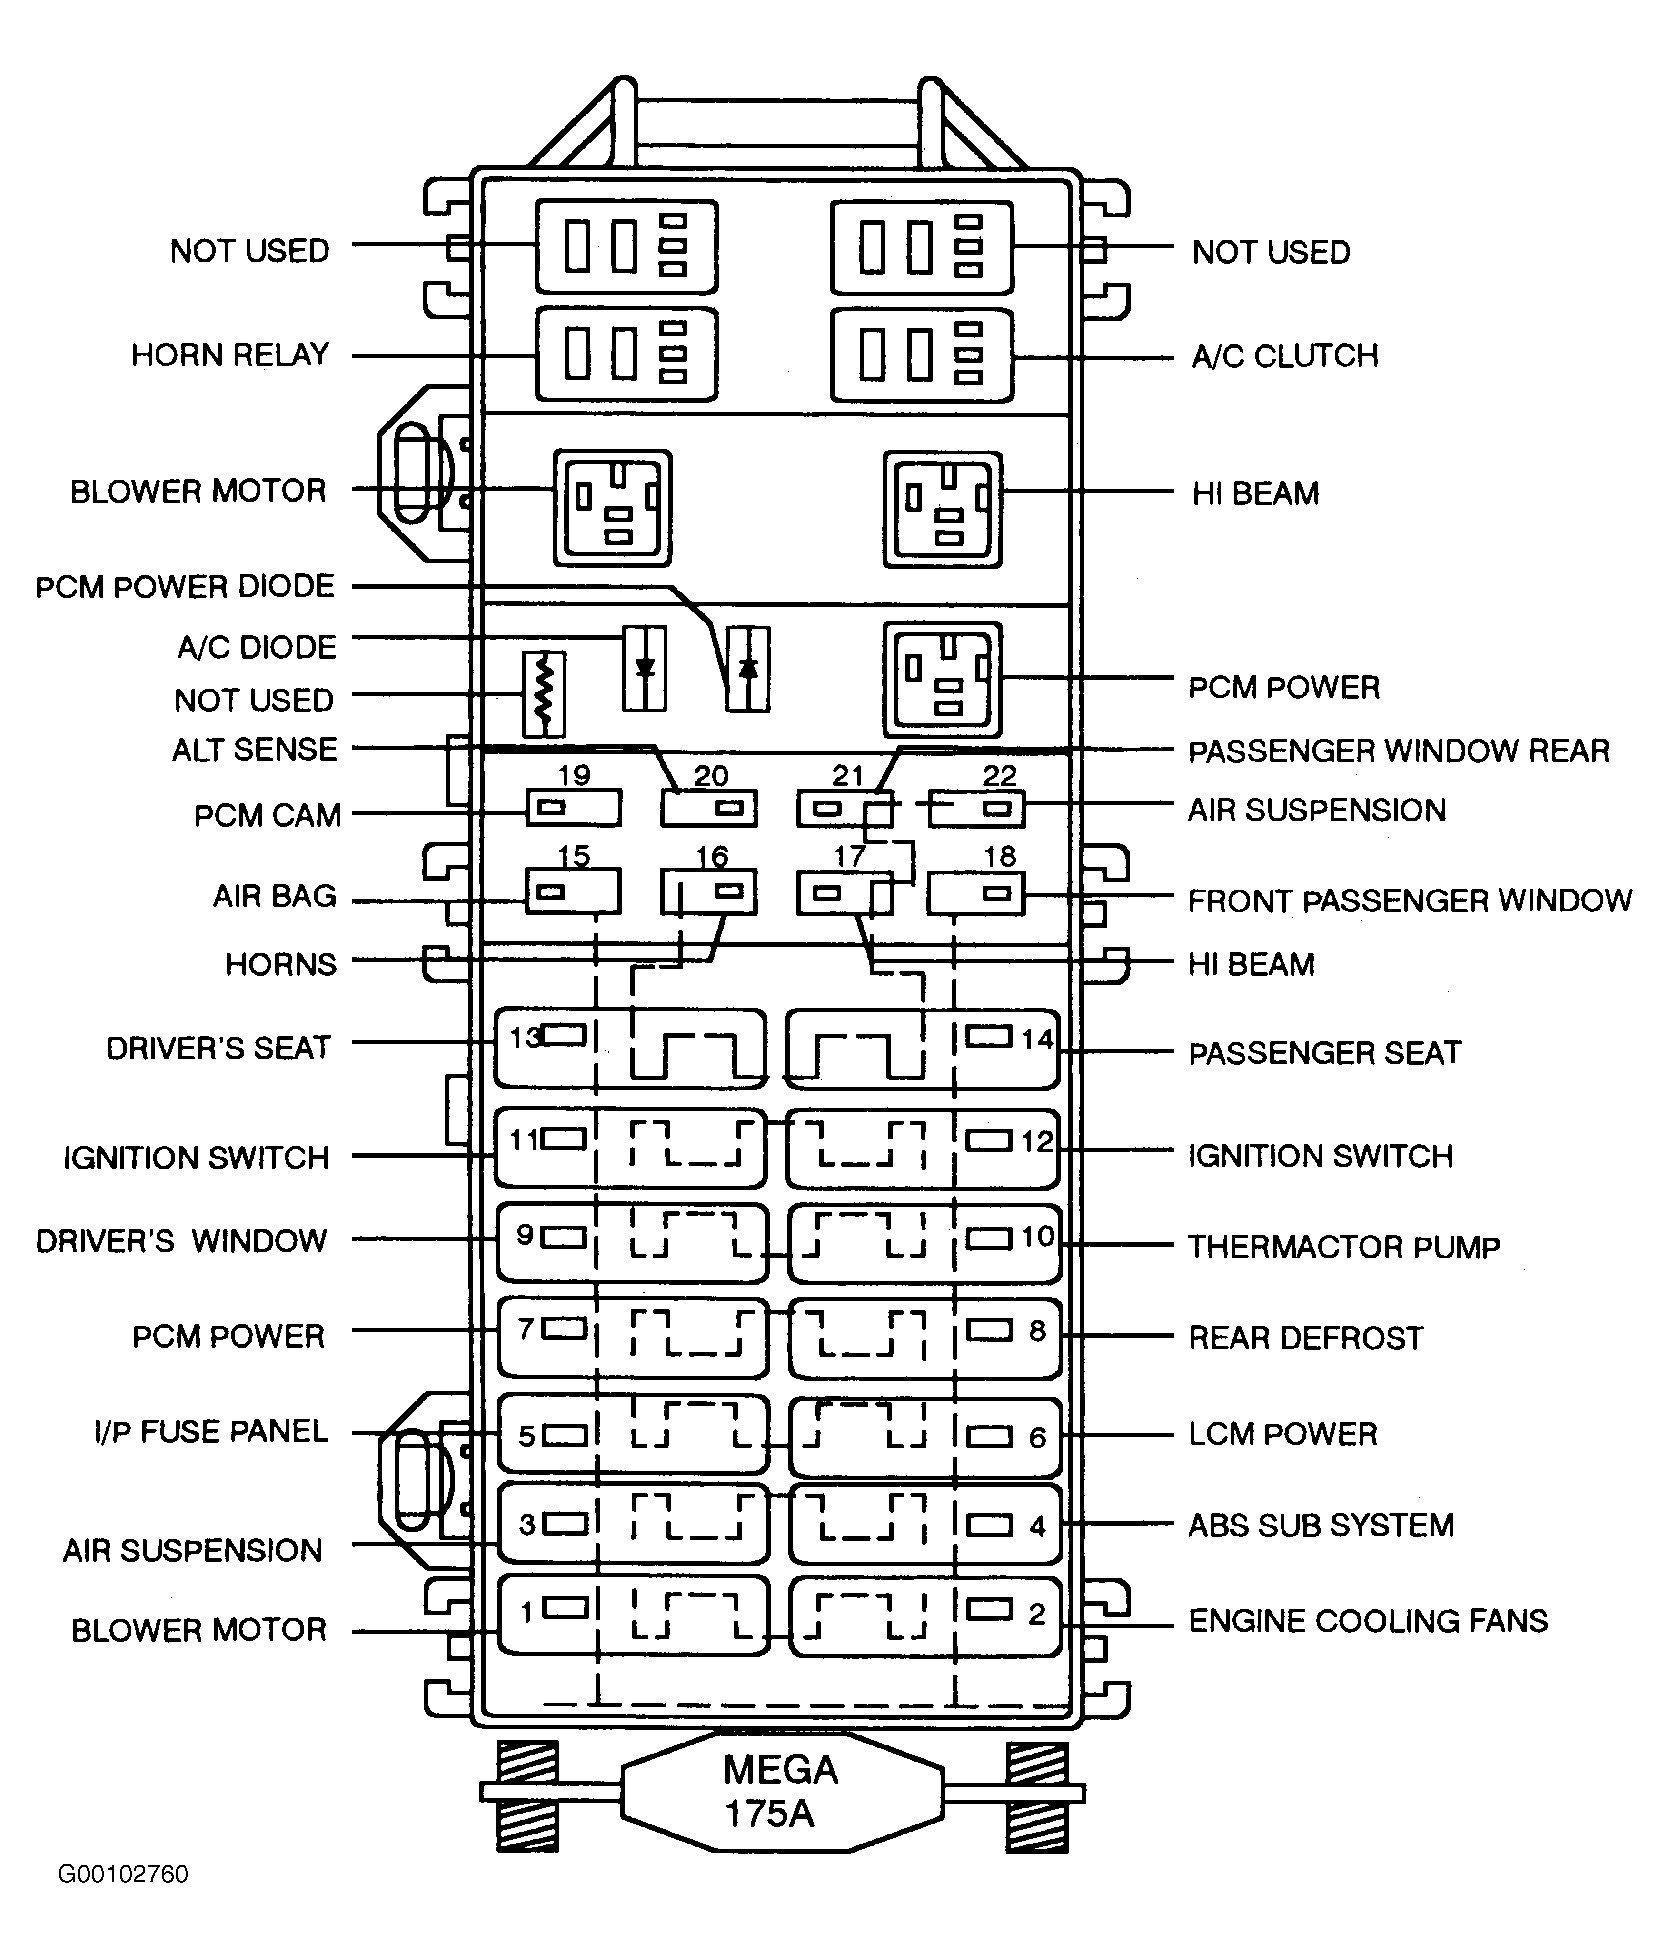 hight resolution of 1998 jaguar xj8 fuse diagram manual e book1998 jaguar xj8 fuse box diagram wiring diagram paperwiring